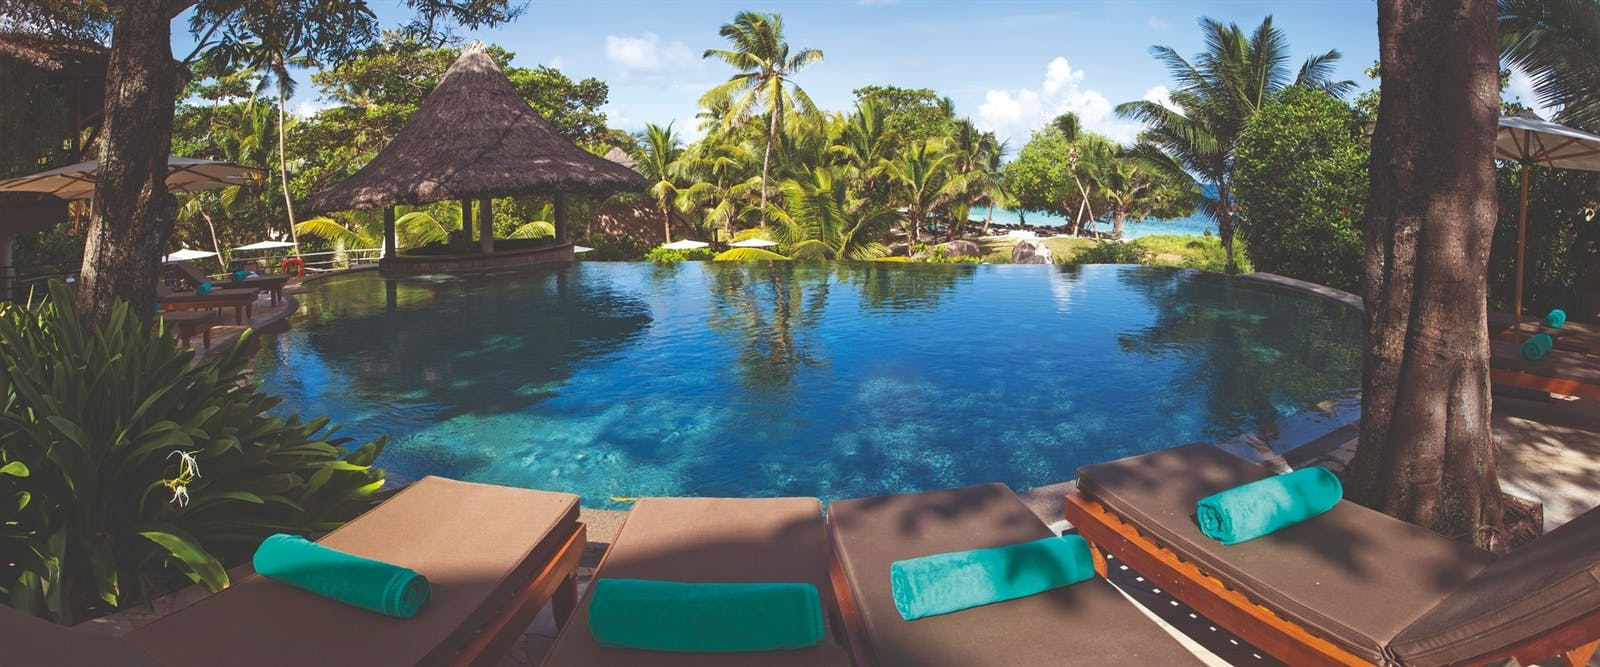 Swimming Pool at Constance Lemuria Resort, Seychelles